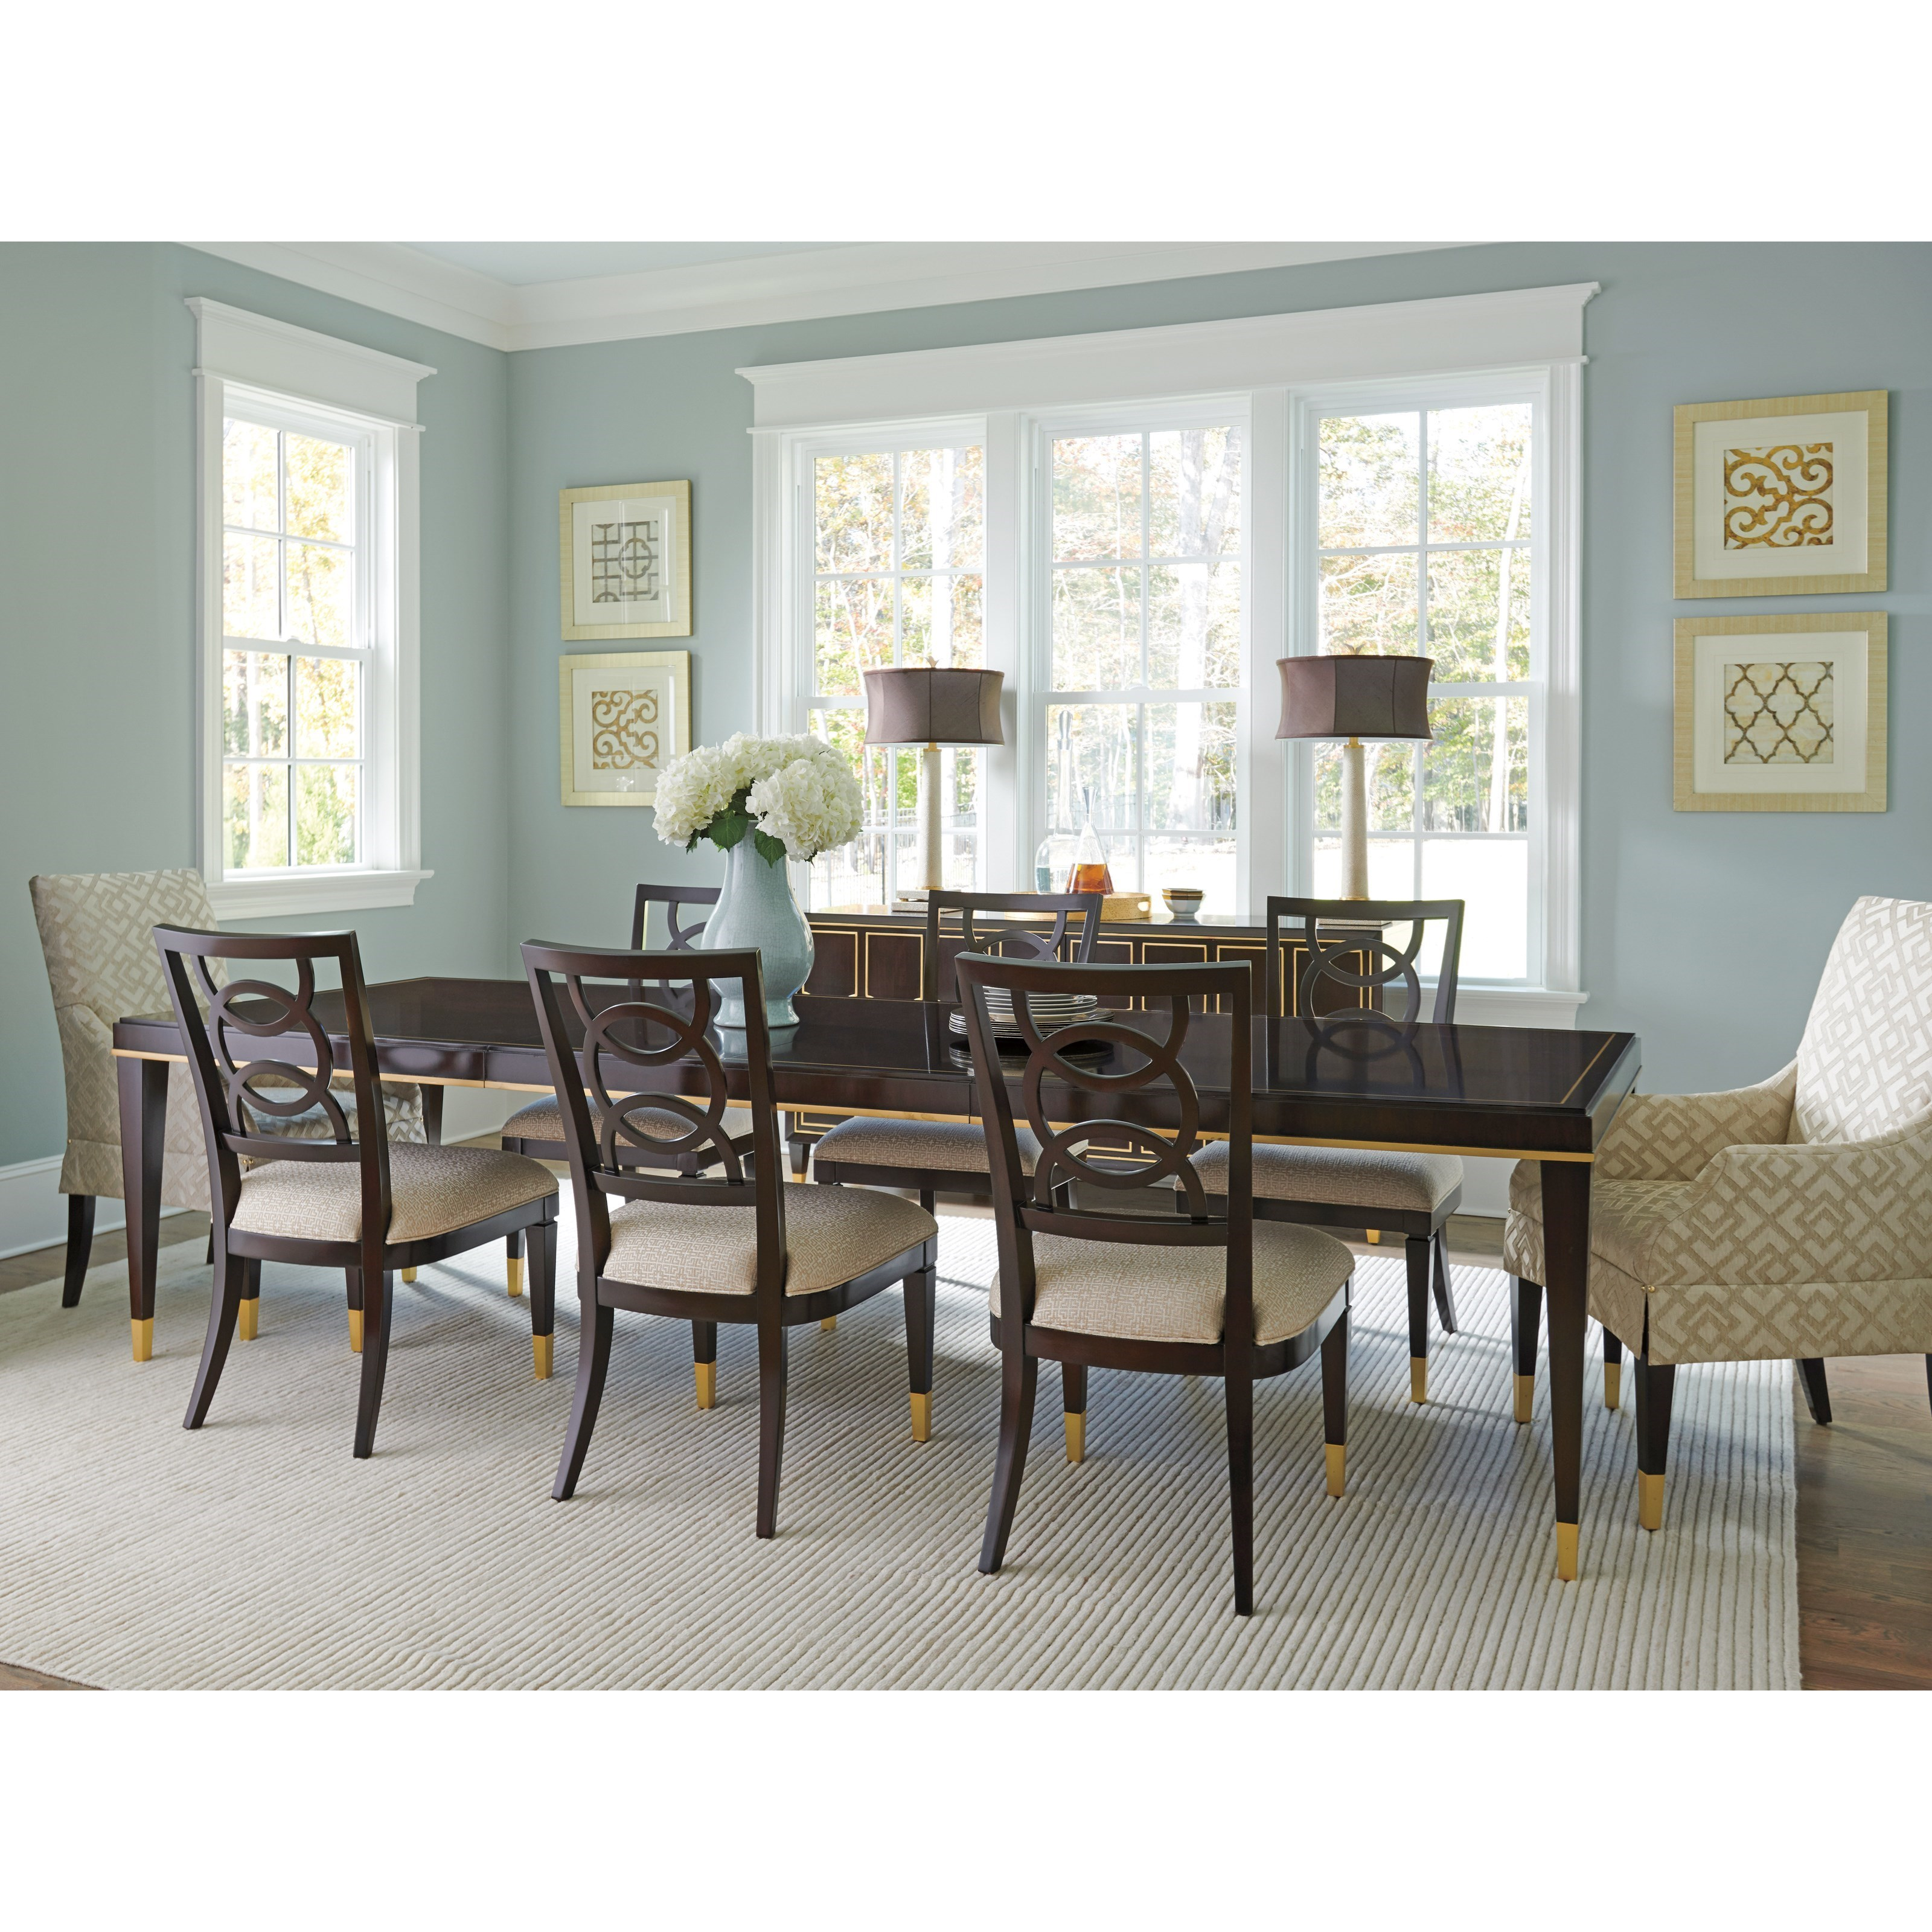 Carlyle 9 Pc Dining Set by Lexington at Baer's Furniture